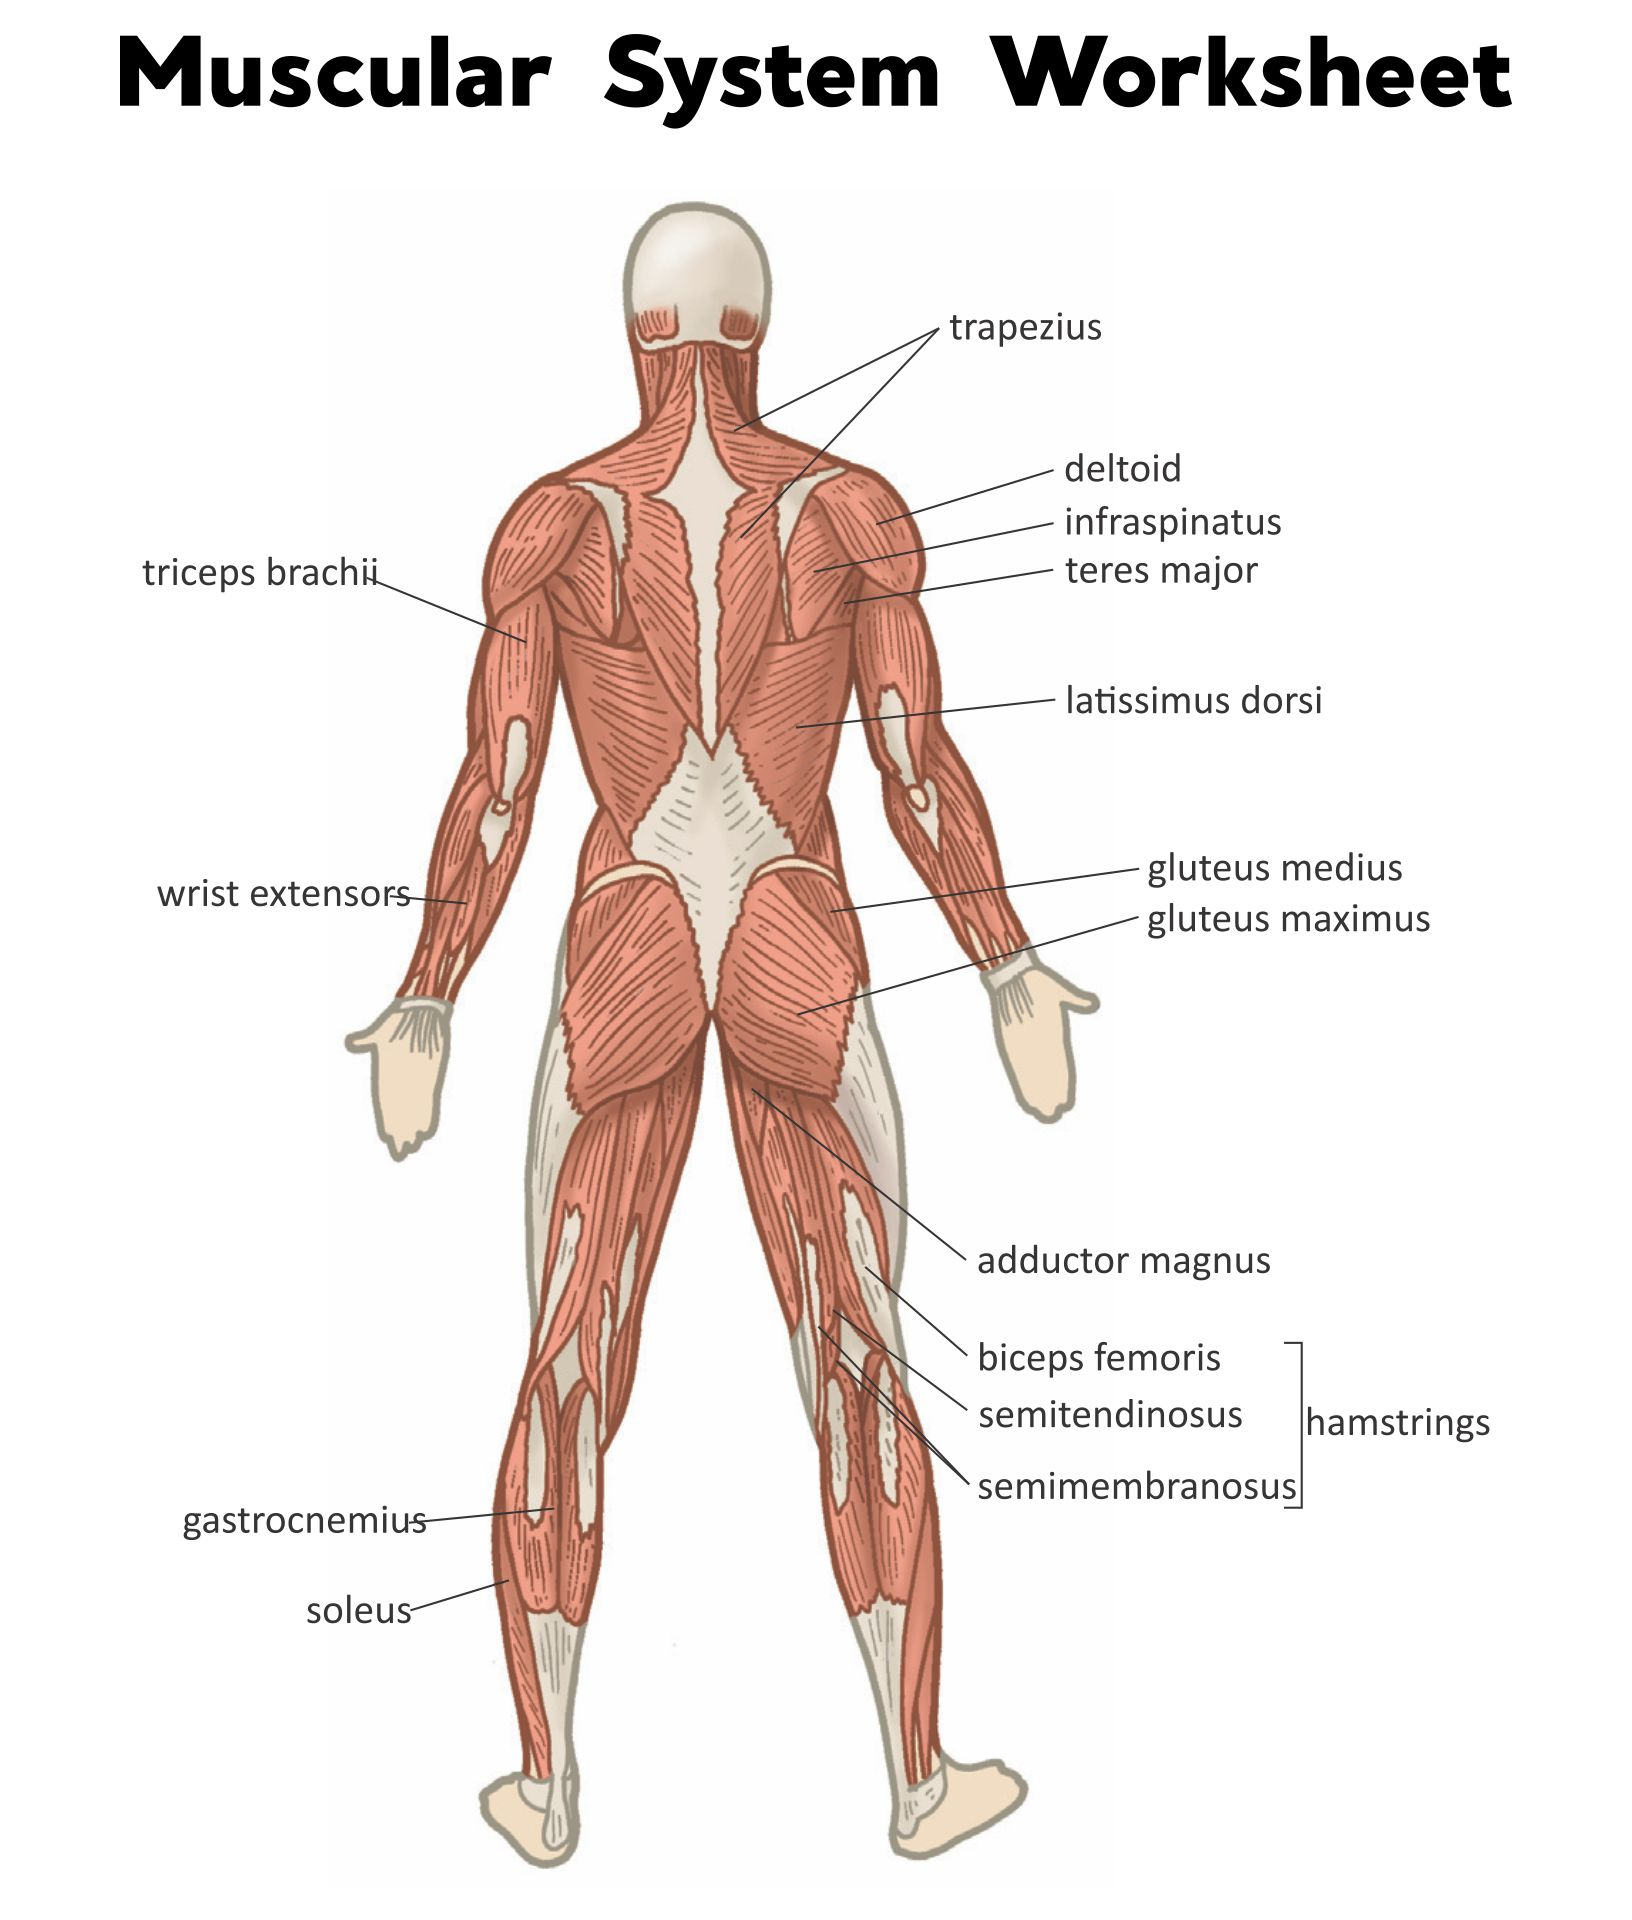 Labeling The Muscular System Worksheet Answers